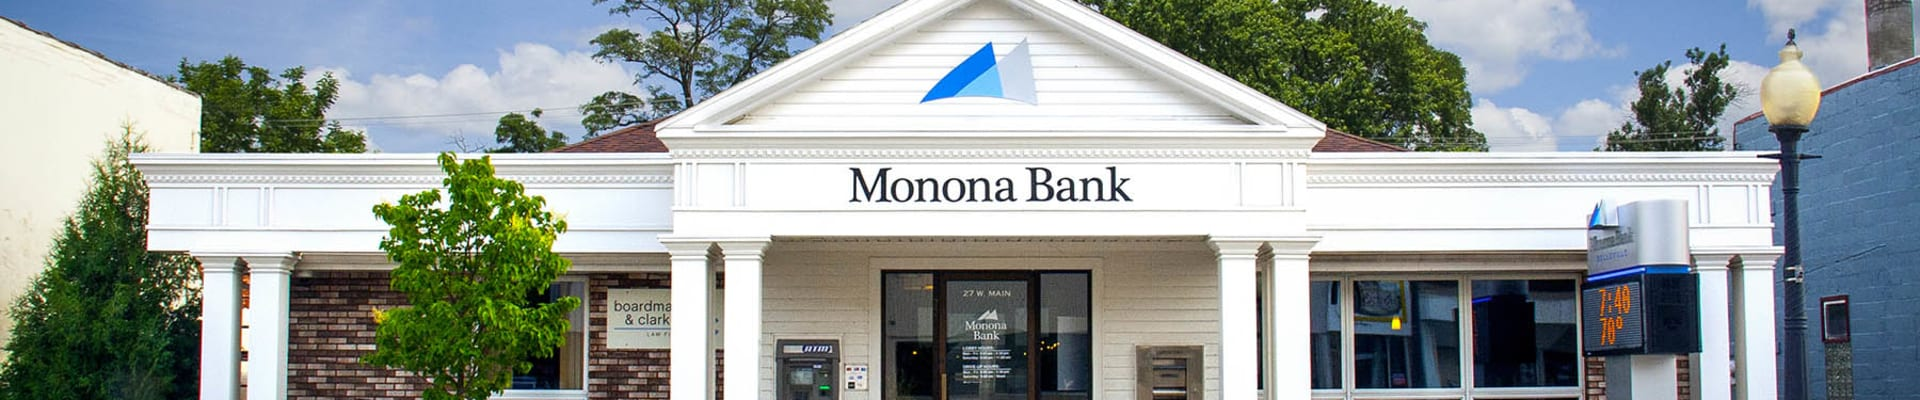 Monona Bank Belleville WI